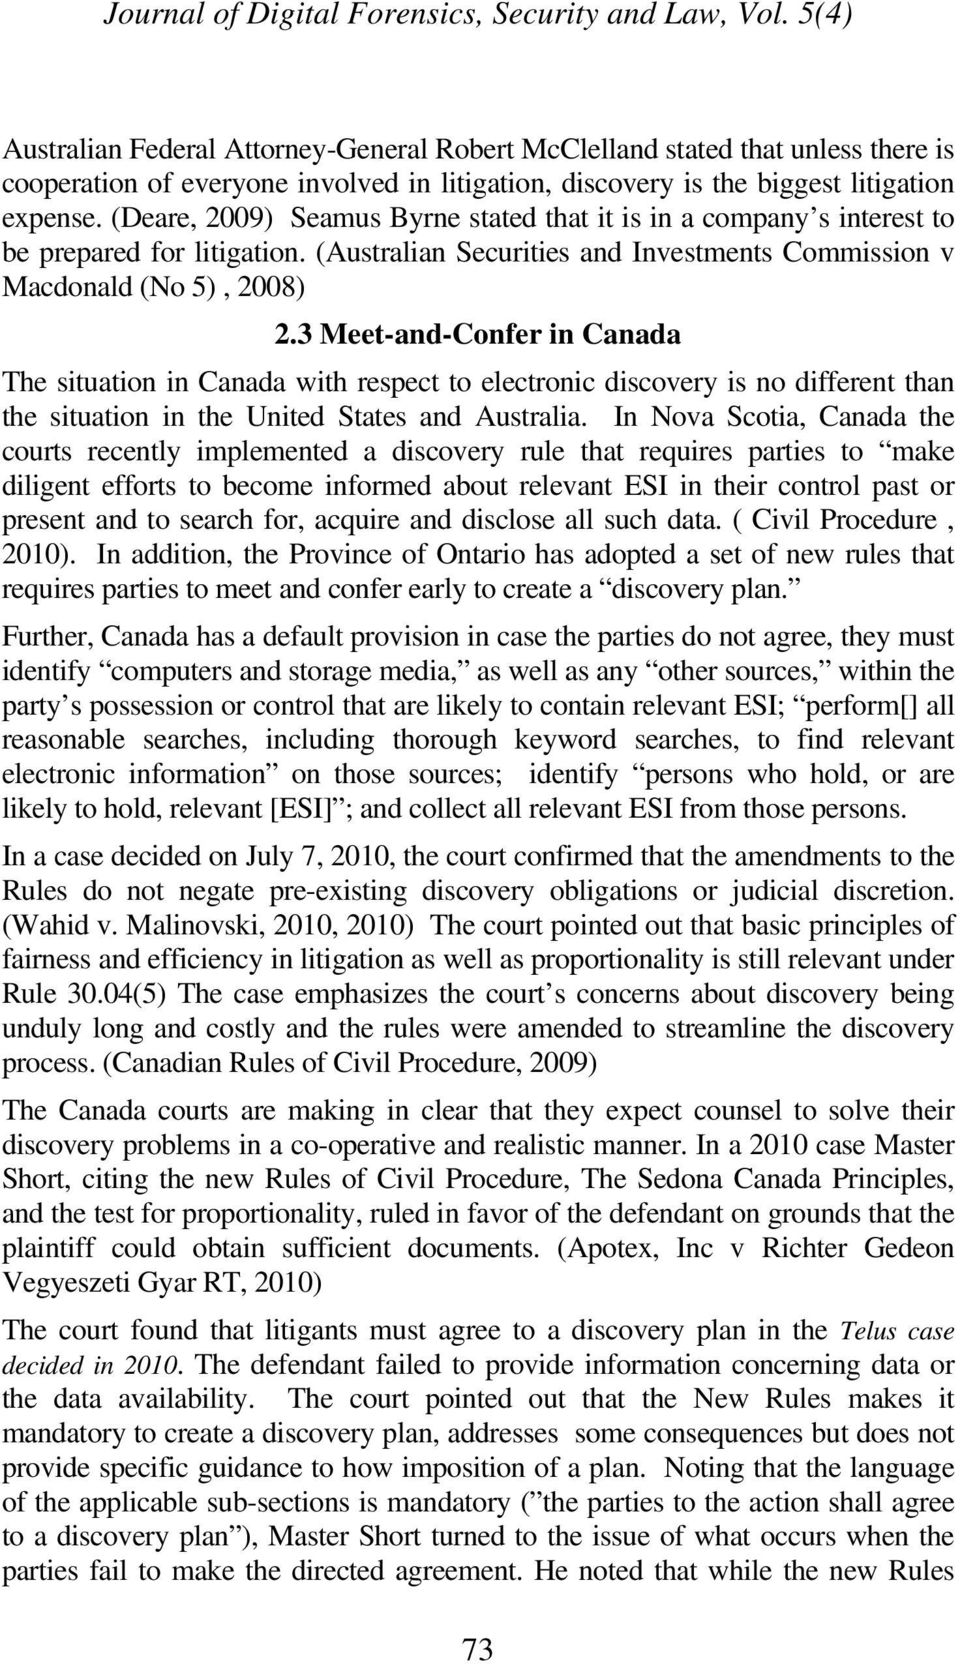 3 Meet-and-Confer in Canada The situation in Canada with respect to electronic discovery is no different than the situation in the United States and Australia.